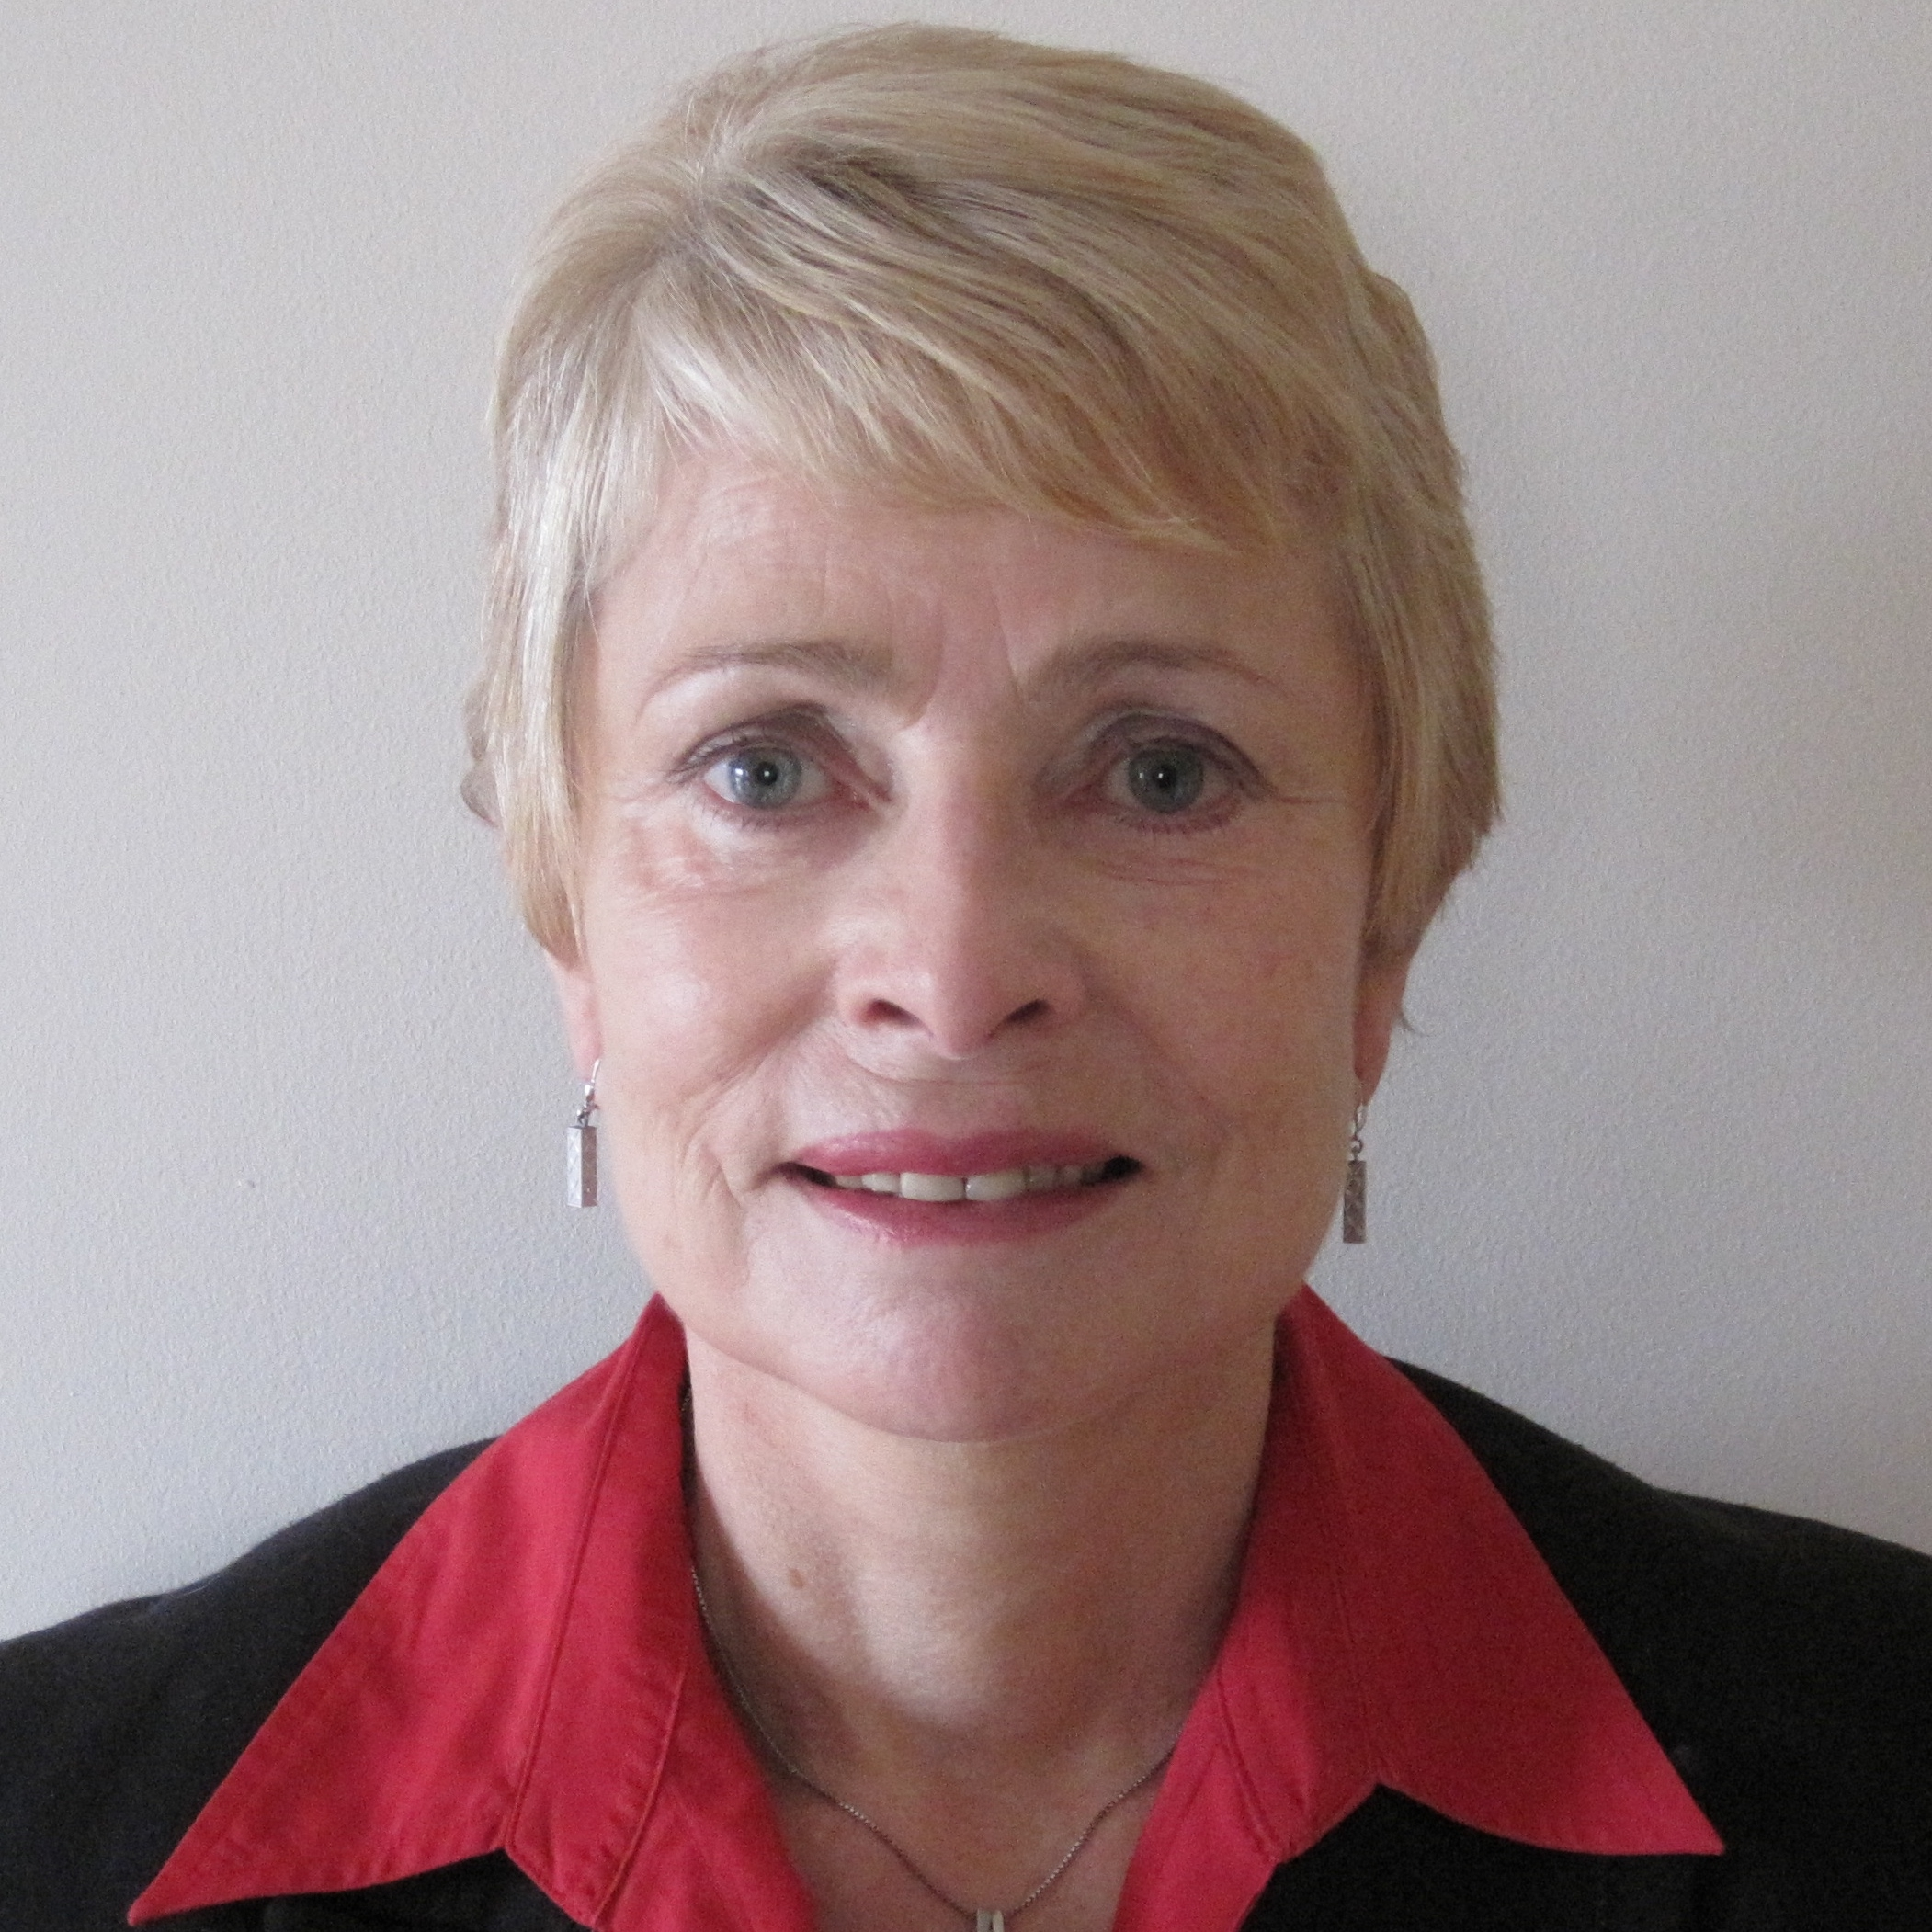 Liz Allen - Former Head of Division, H.M. Revenue and Customs and H.M. Customs and Excise (United Kingdom)